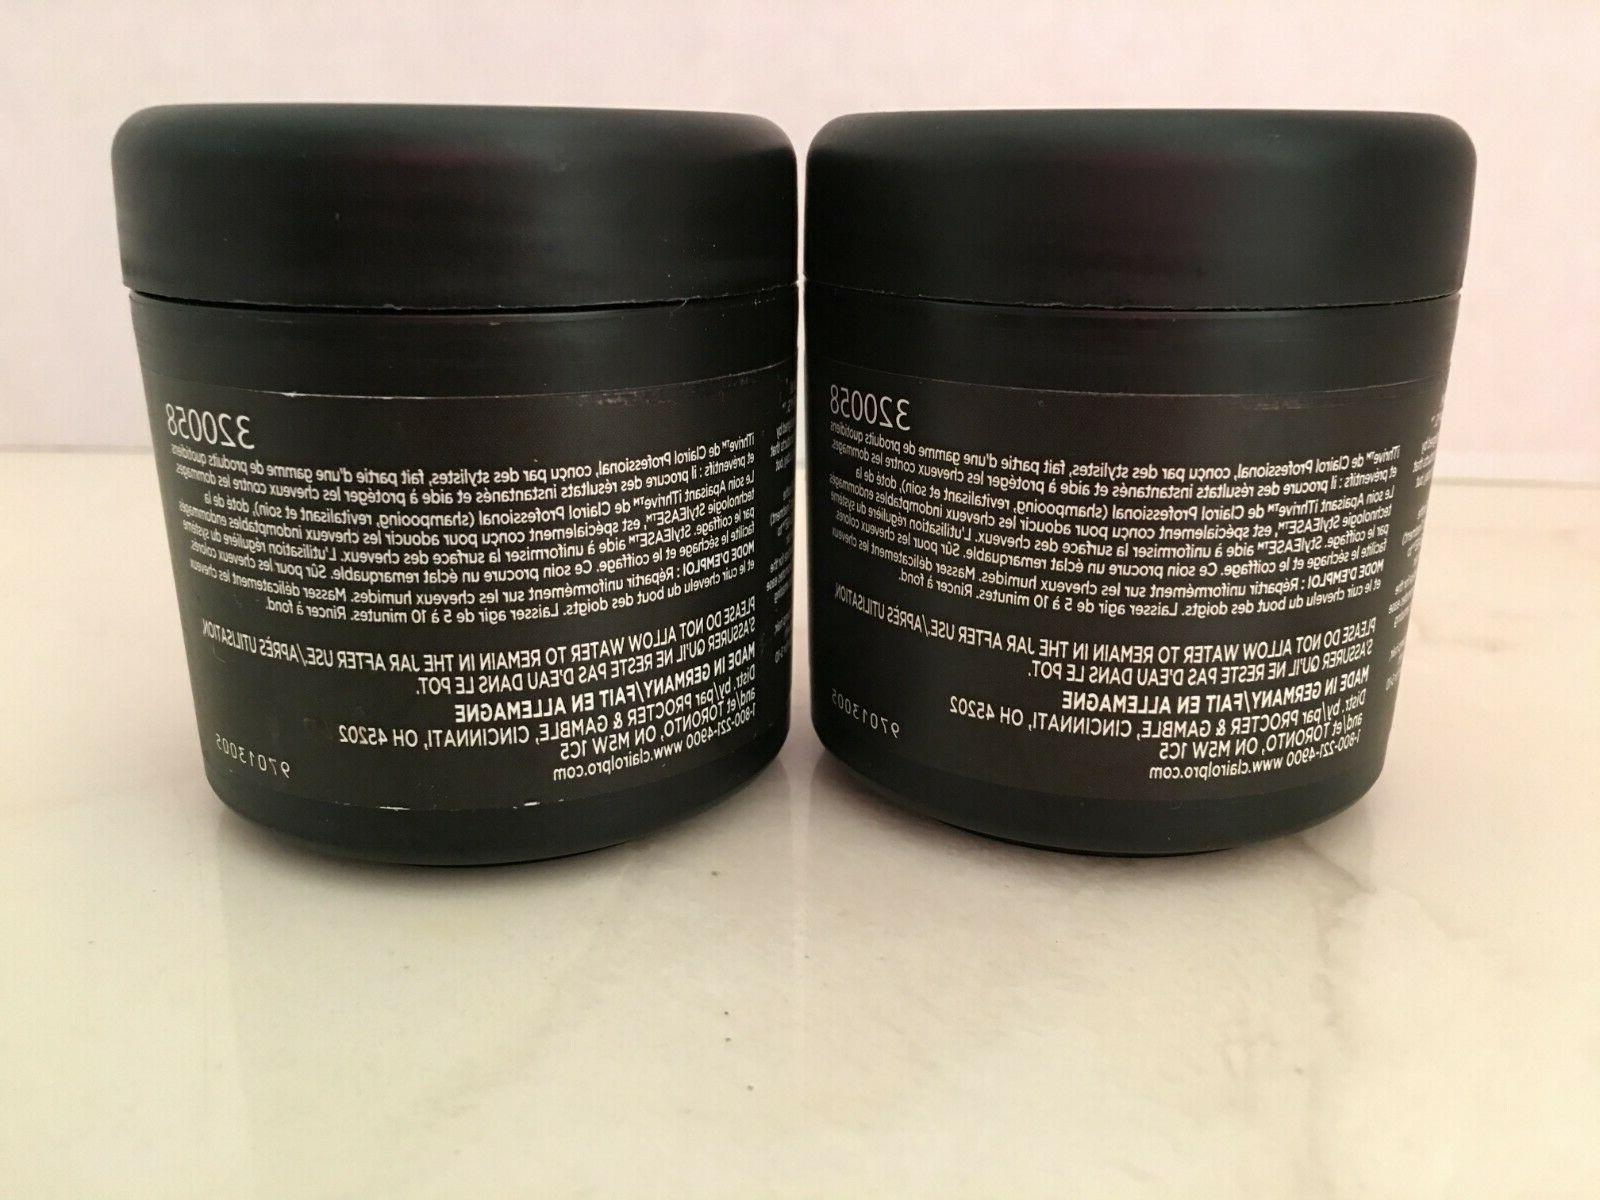 Soothe Treatment Damaged 5.07 2